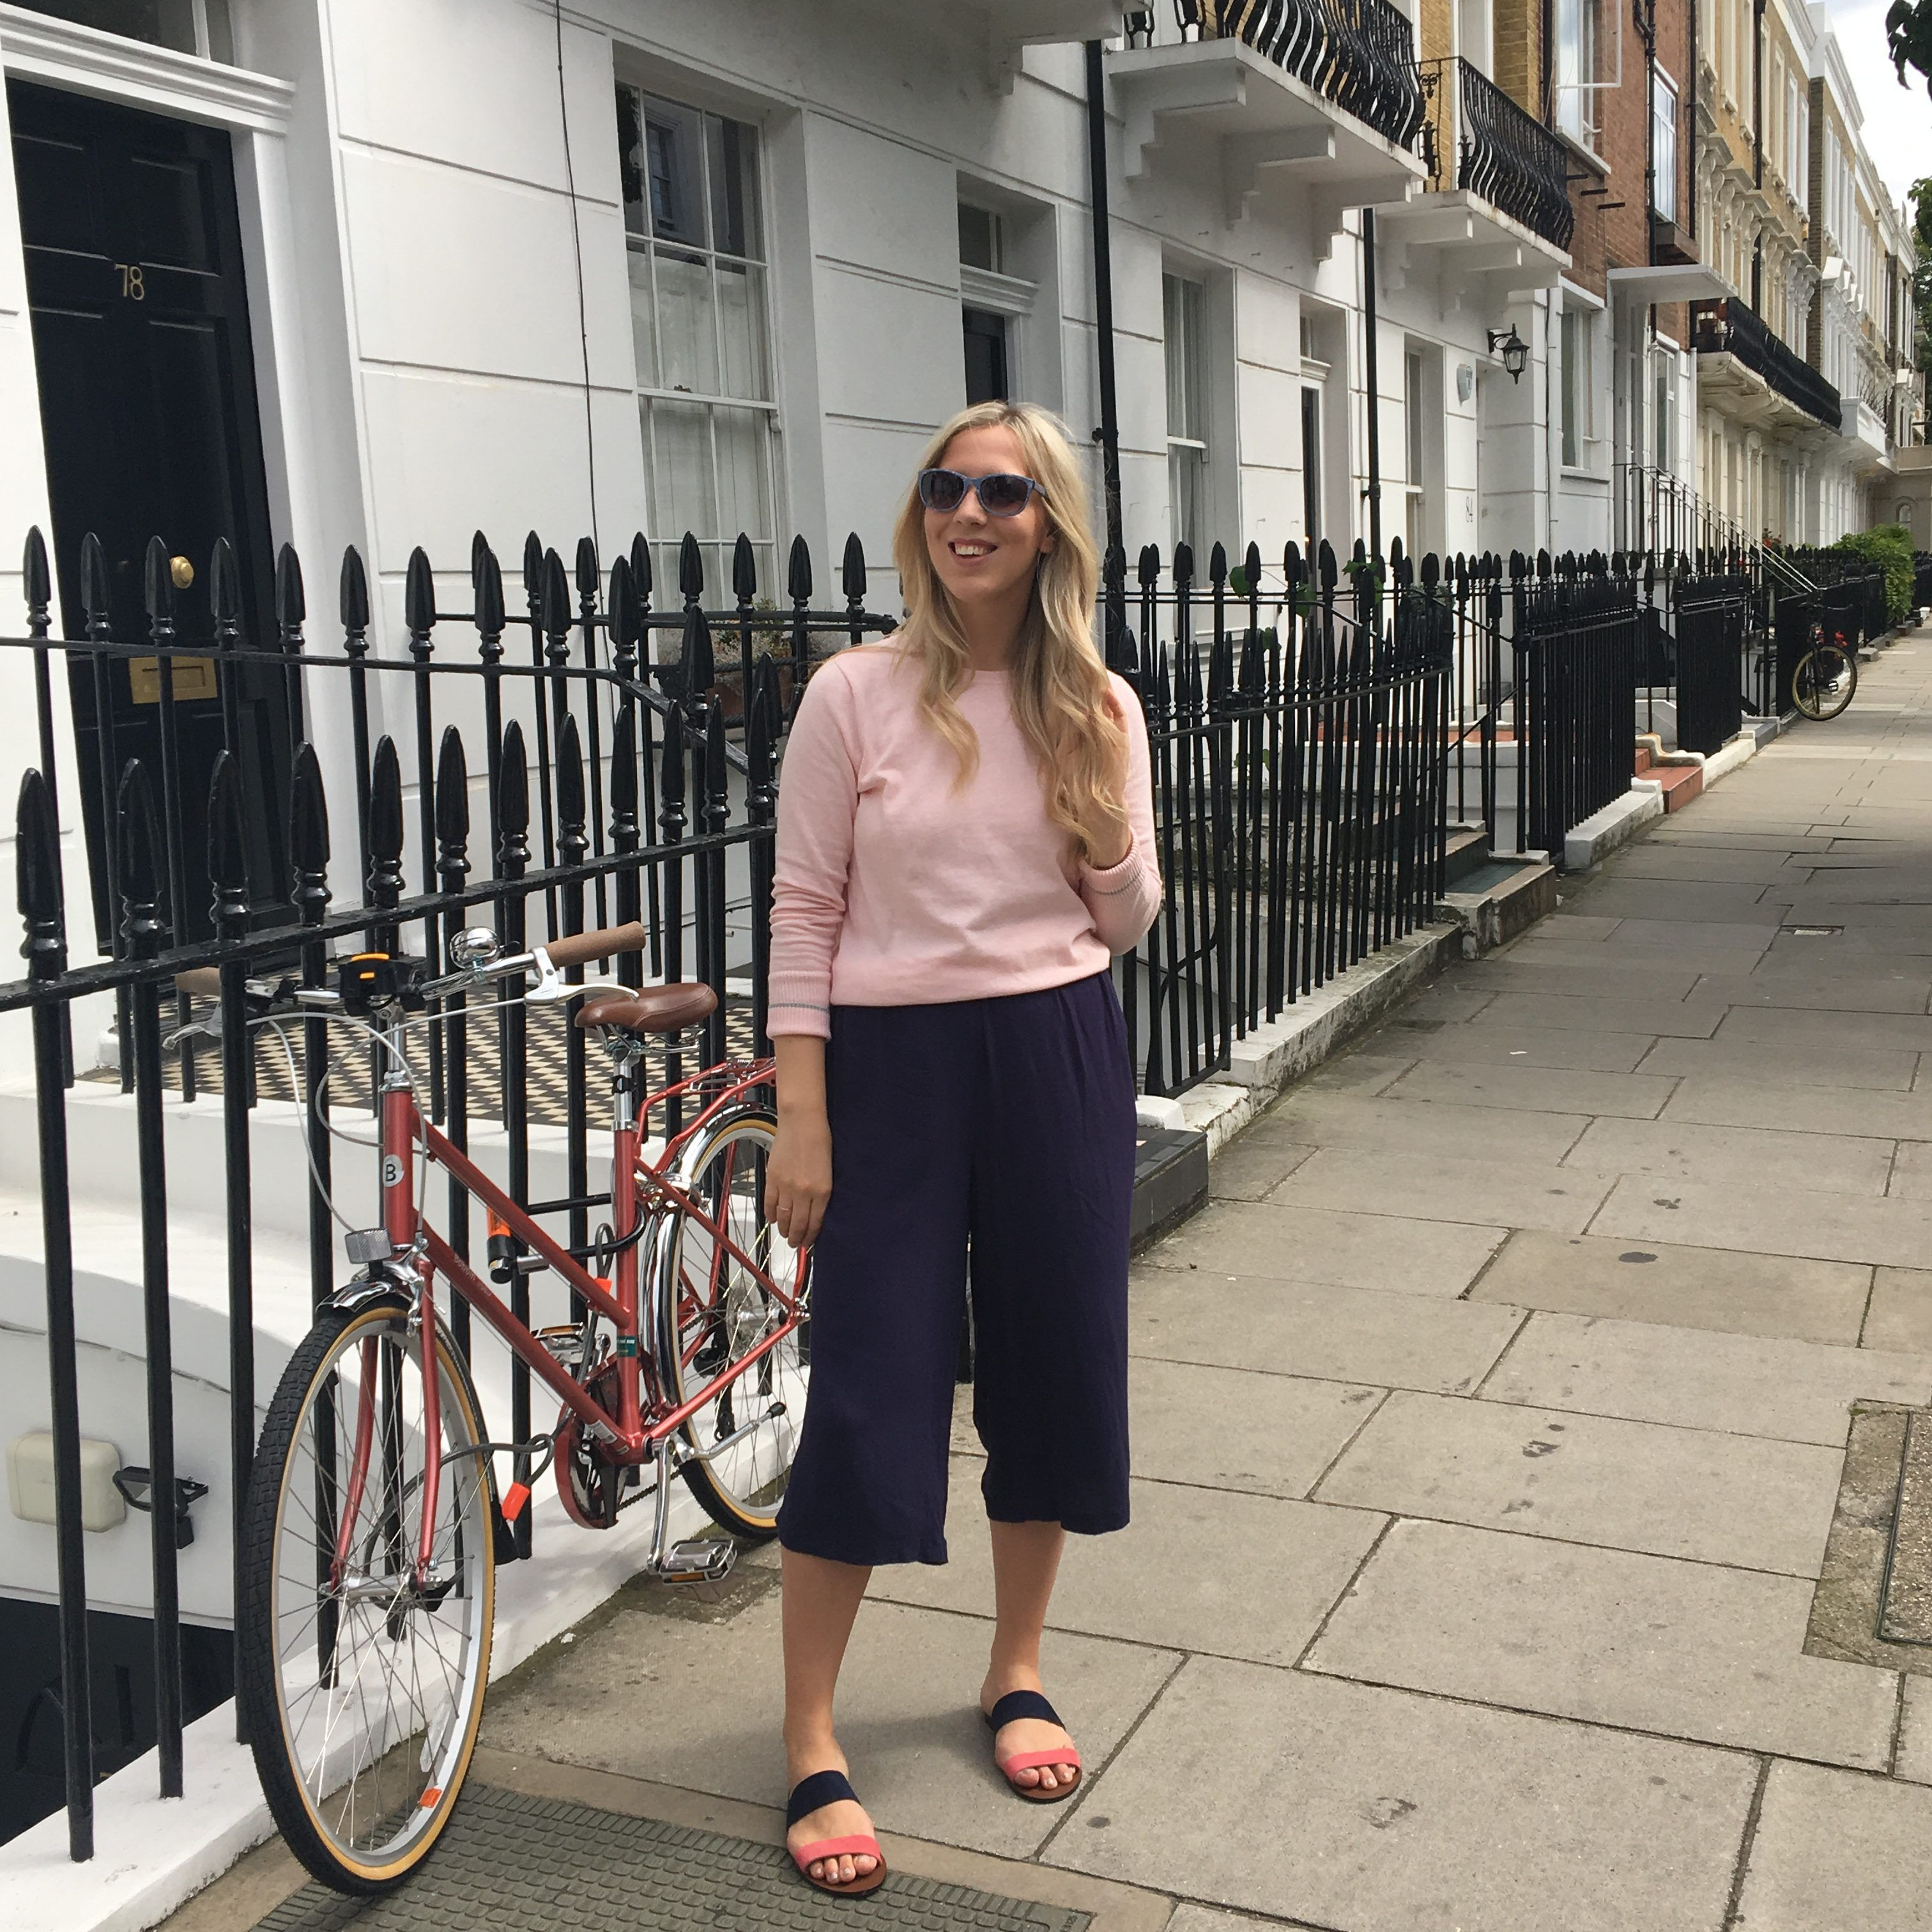 A staple in my wardrobe year-round, a great pair of culottes can work seamlessly from day-to-night